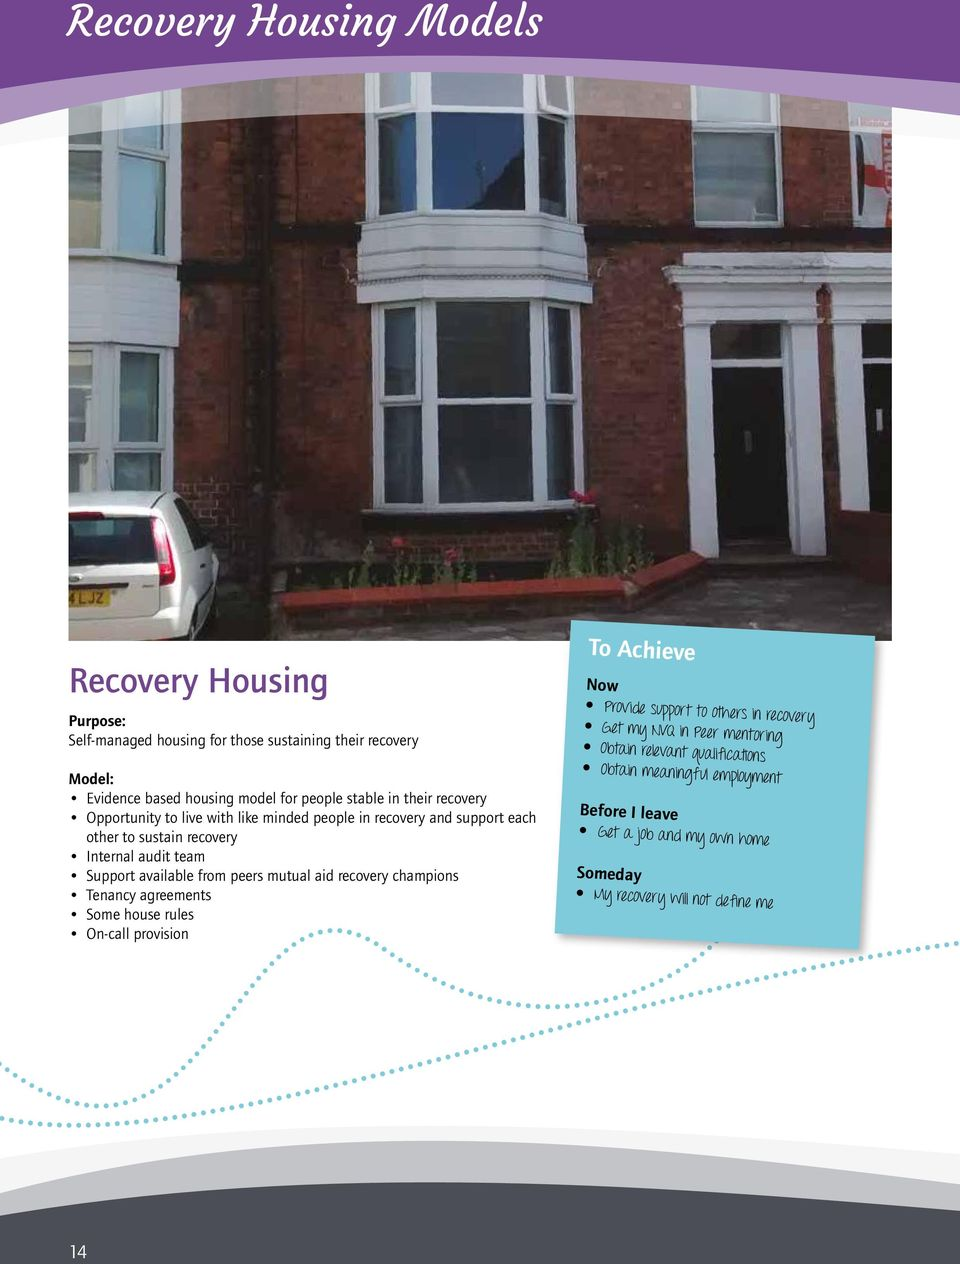 available from peers mutual aid recovery champions Tenancy agreements Some house rules On-call provision To Achieve Now Provide support to others in recovery